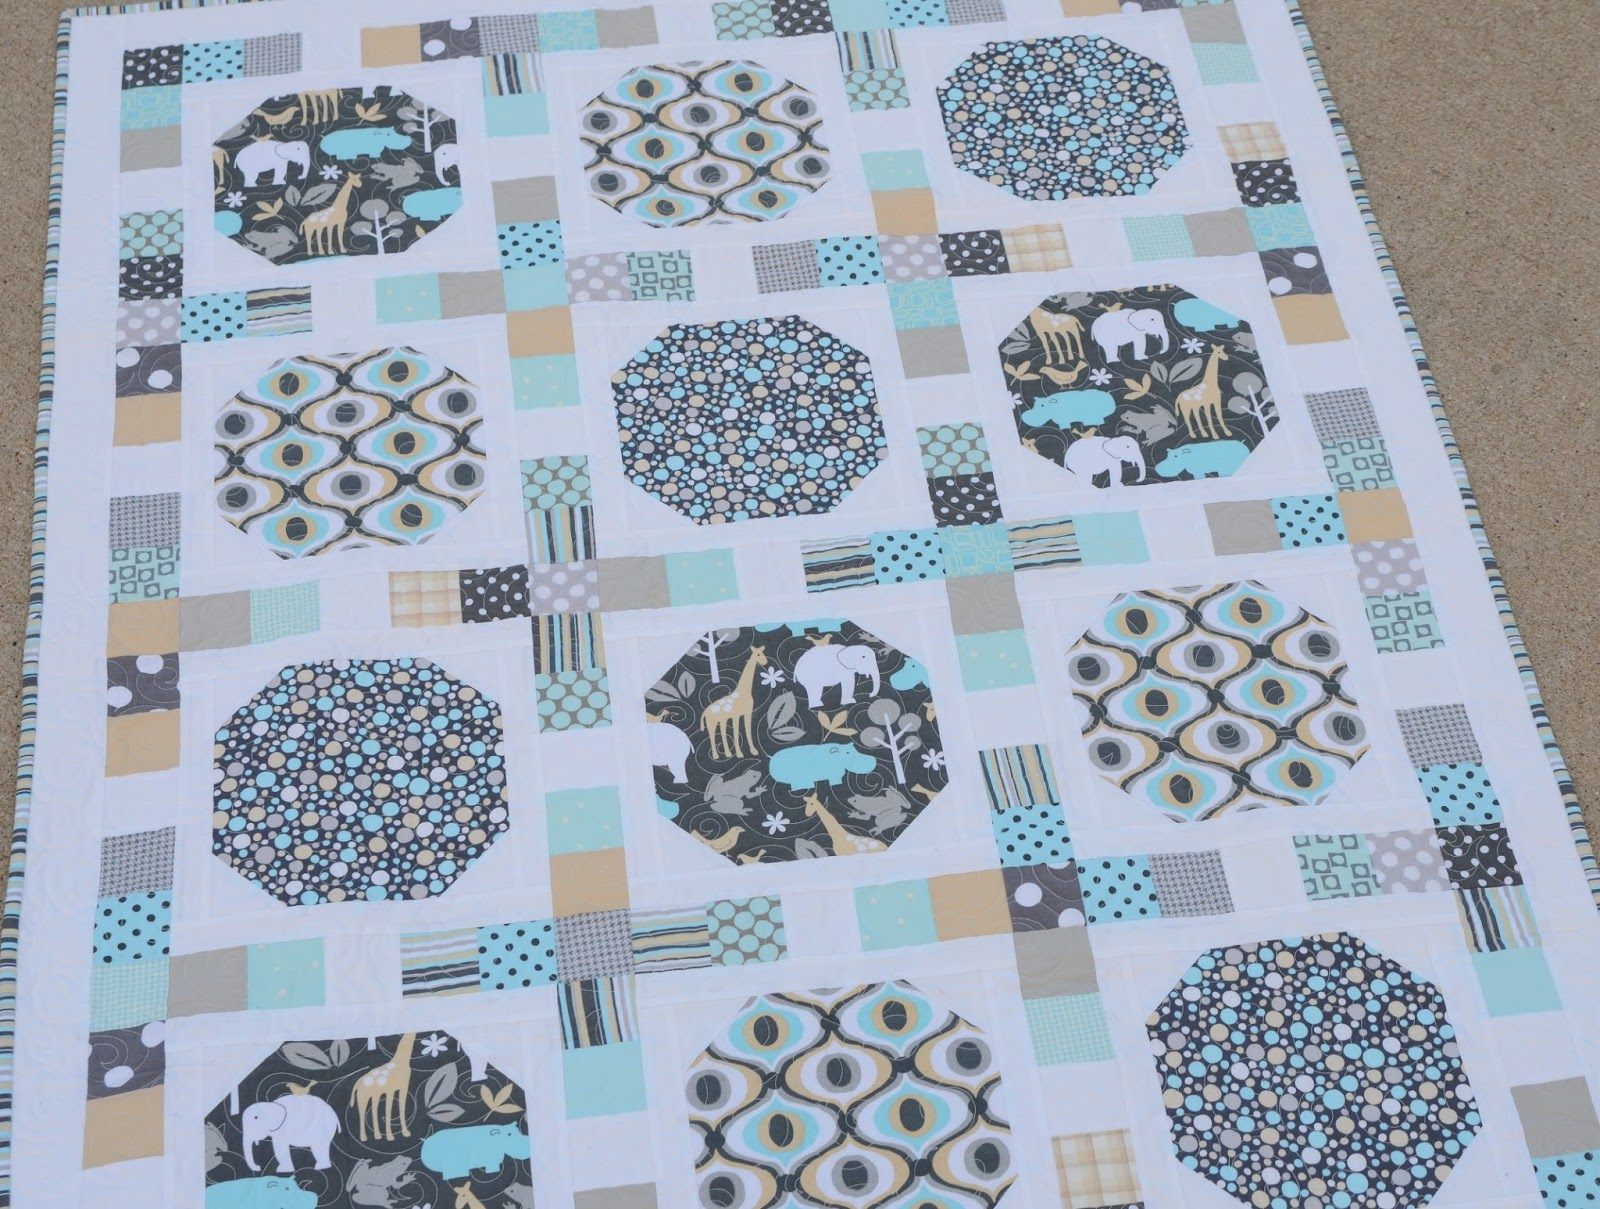 Quilt Pattern Using Focus Fabric : Hyacinth Quilt Designs: Using a focus fabric...